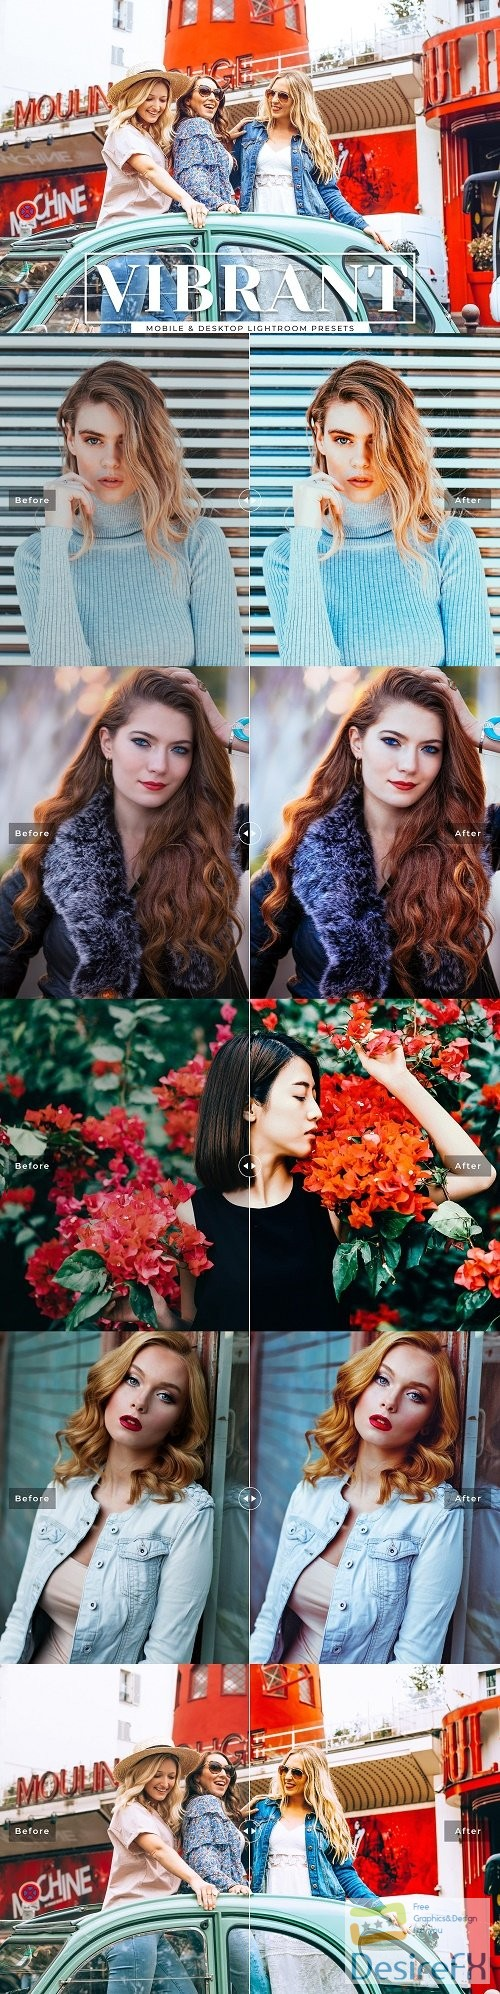 Vibrant Lightroom Presets Collection - 3690119